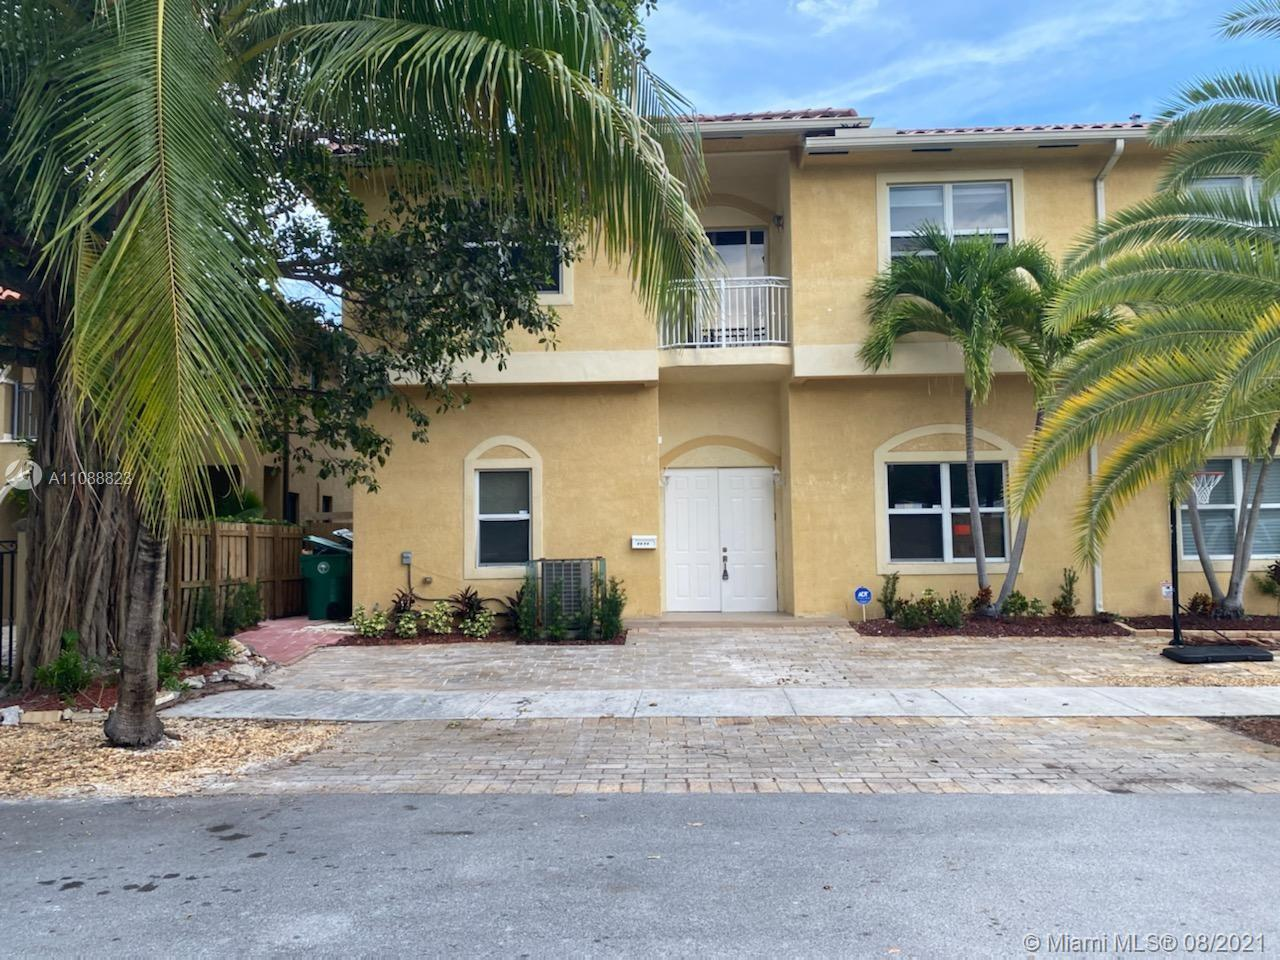 GREAT 4 BEDROOMS AND 3 BATHROOMS. PLENTY OF  PARKING SPACES. COMPLETELY REMODELED. UNIT FEATURES SPACIOUS BEDROOMS, NEW BATHROOMS (MASTER BATH HAS JACUZZI AND SHOWER). MODERN STAINLESS STEEL GRANITE KITCHEN, NEW FLOORING AND MUCH MORE.